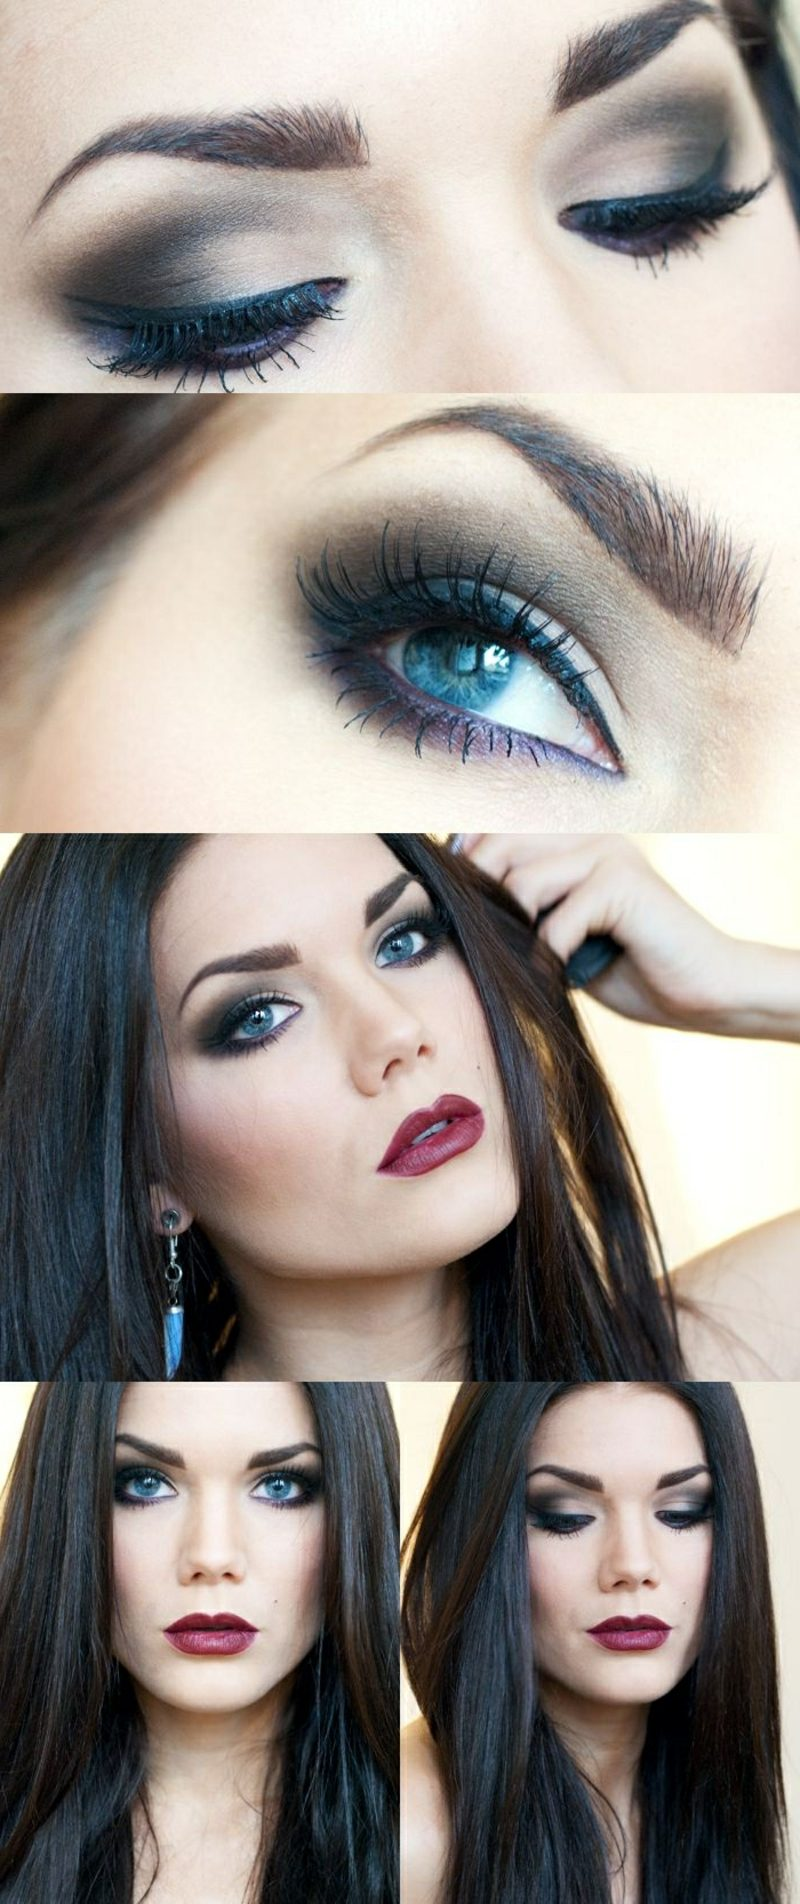 Make up professionell blaue Augenfarbe